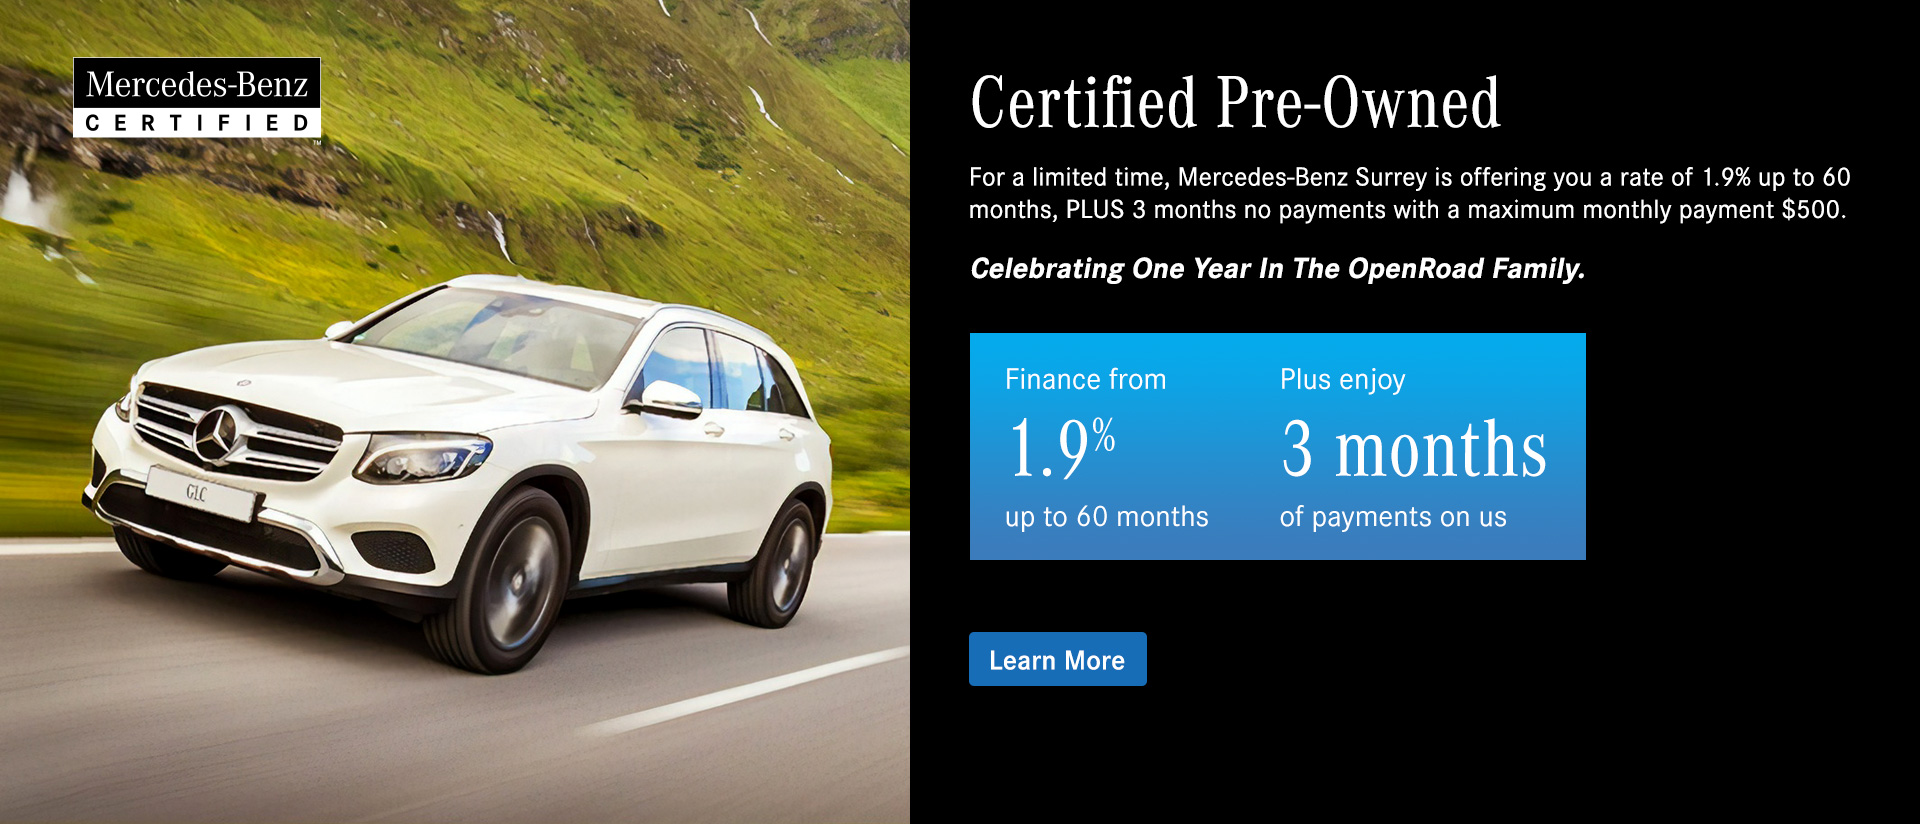 Mercedes Benz Surrey Certified Pre-owned